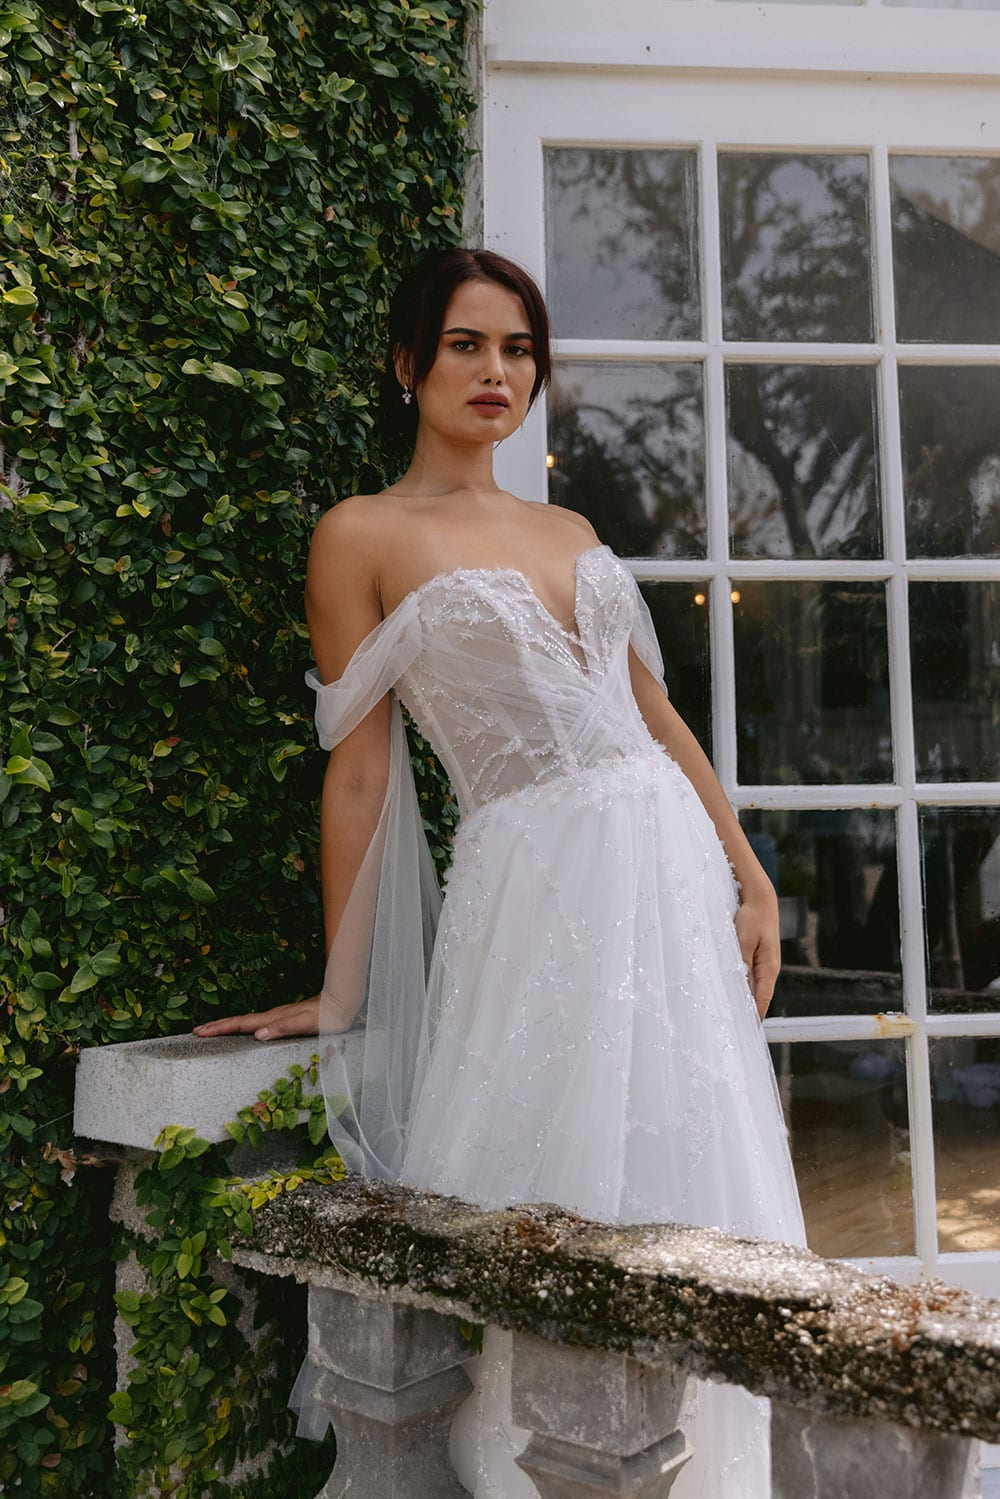 Evie Wedding gown from Vinka Design - Dreamy semi-sheer wedding dress with lace embroidery and beading. The bodice is structured, with hand-appliqued lace and draped with tulle to integrate modern elements with classic design. Model wearing gown on balcony.